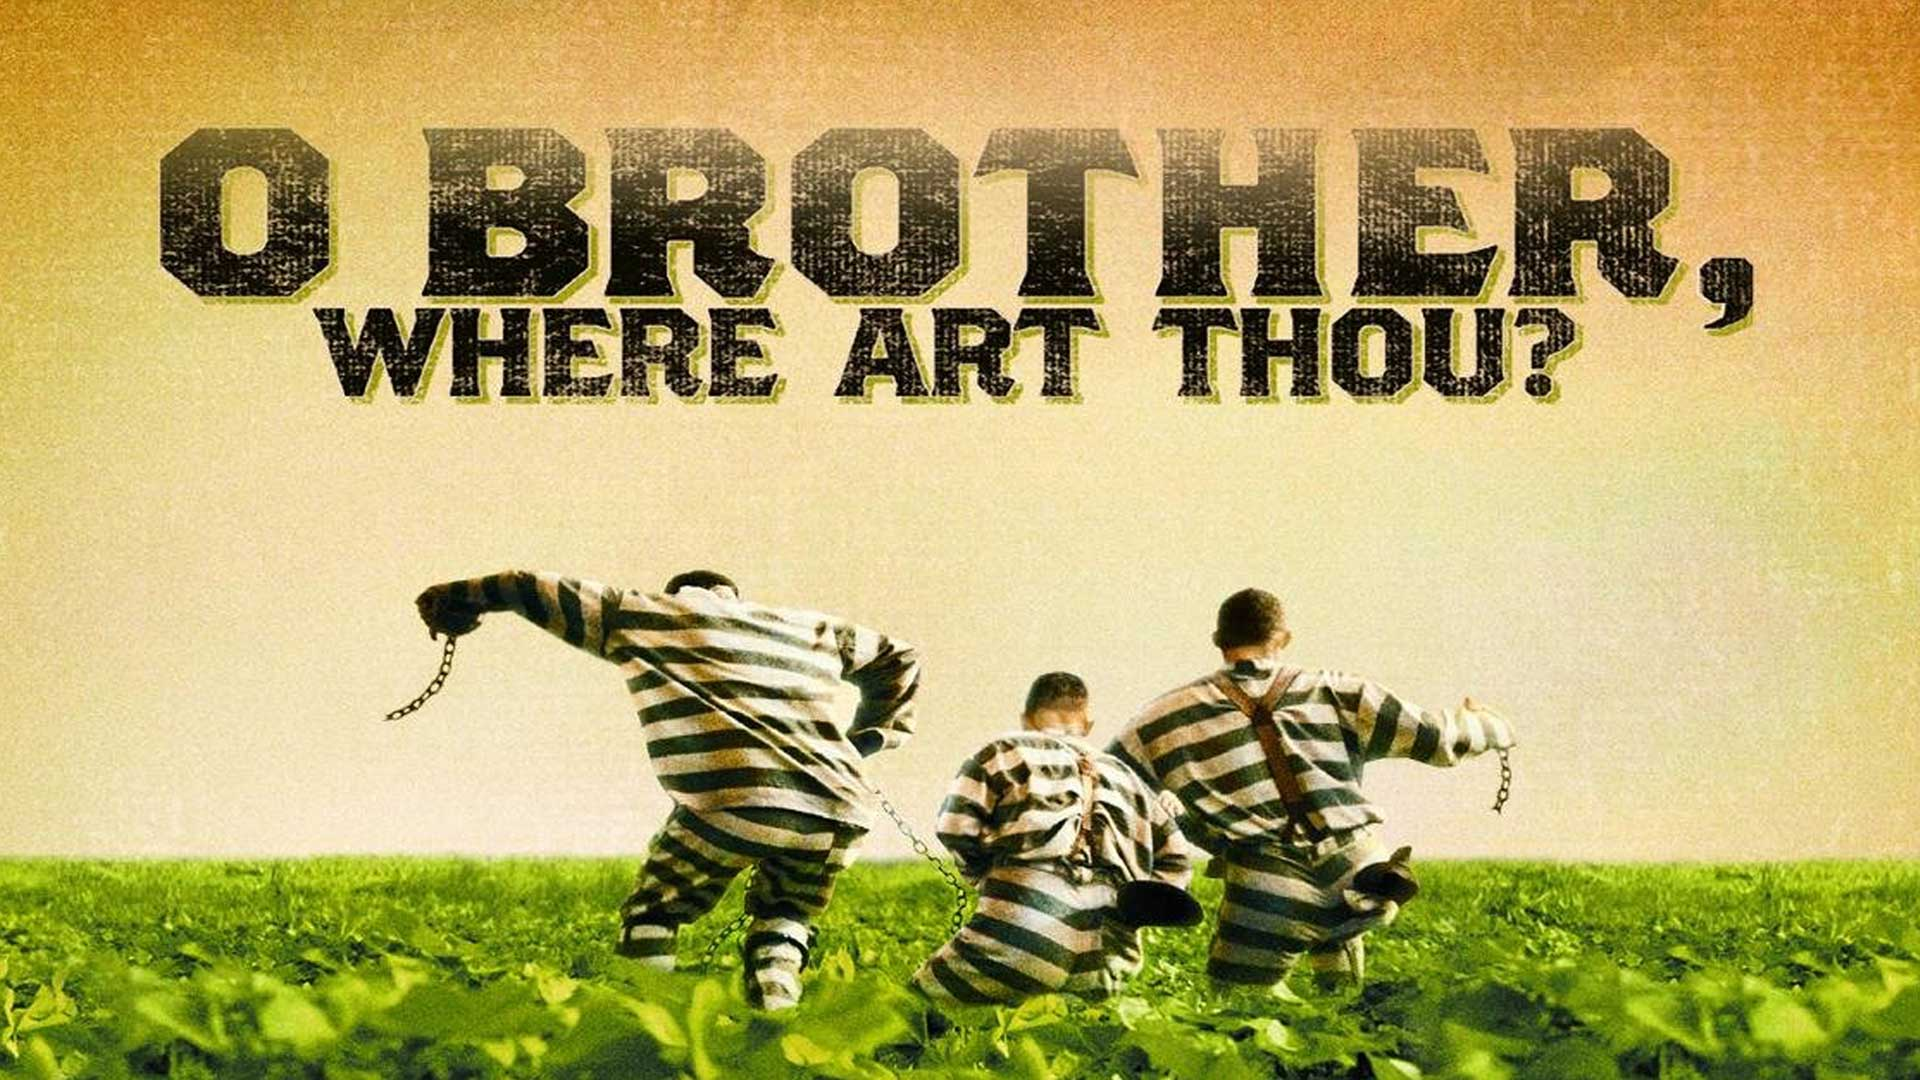 O' Brother, Where Art Thou?